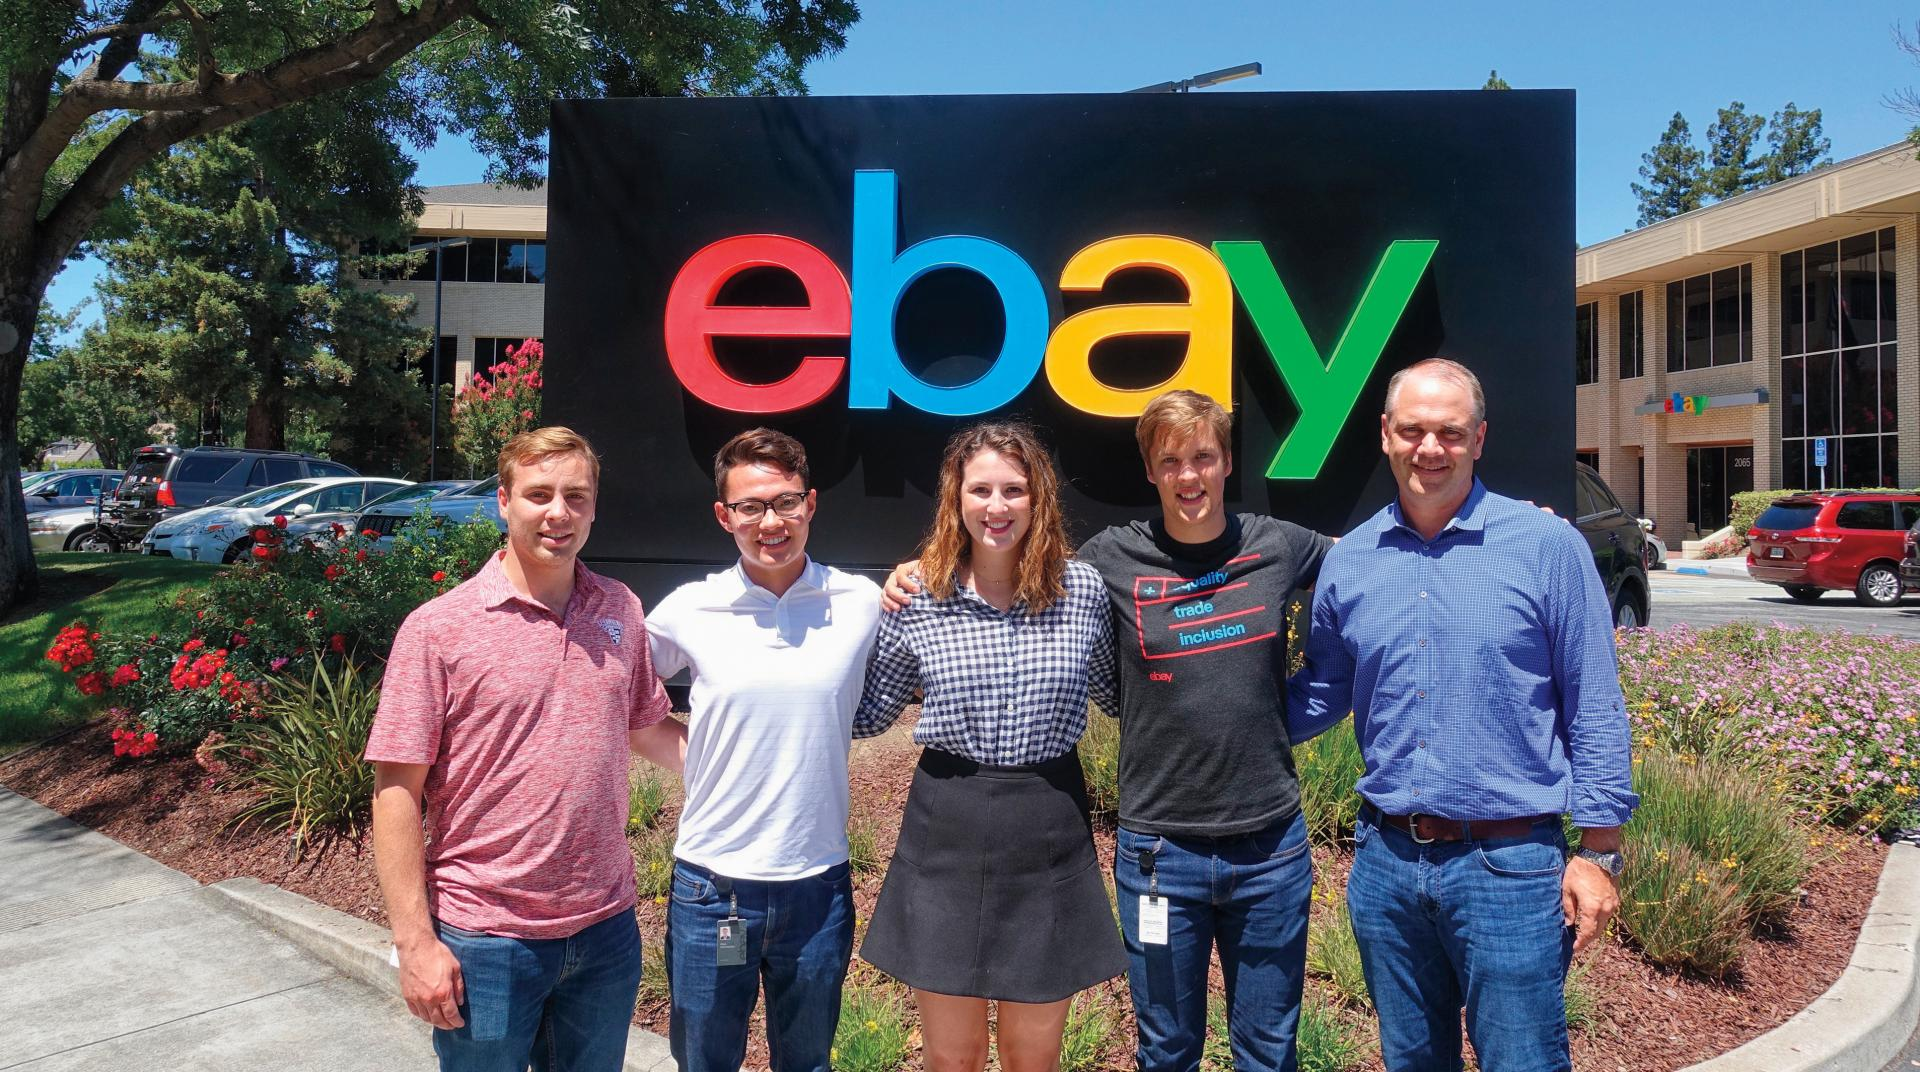 Left to right: Ben �Webb� Campbell �18, Paul Nakamura �18, Jennifer Scudder �18, Aleksandrs Ablazevics �19, and Andy Cring �92. (Photo Provided by eBay).